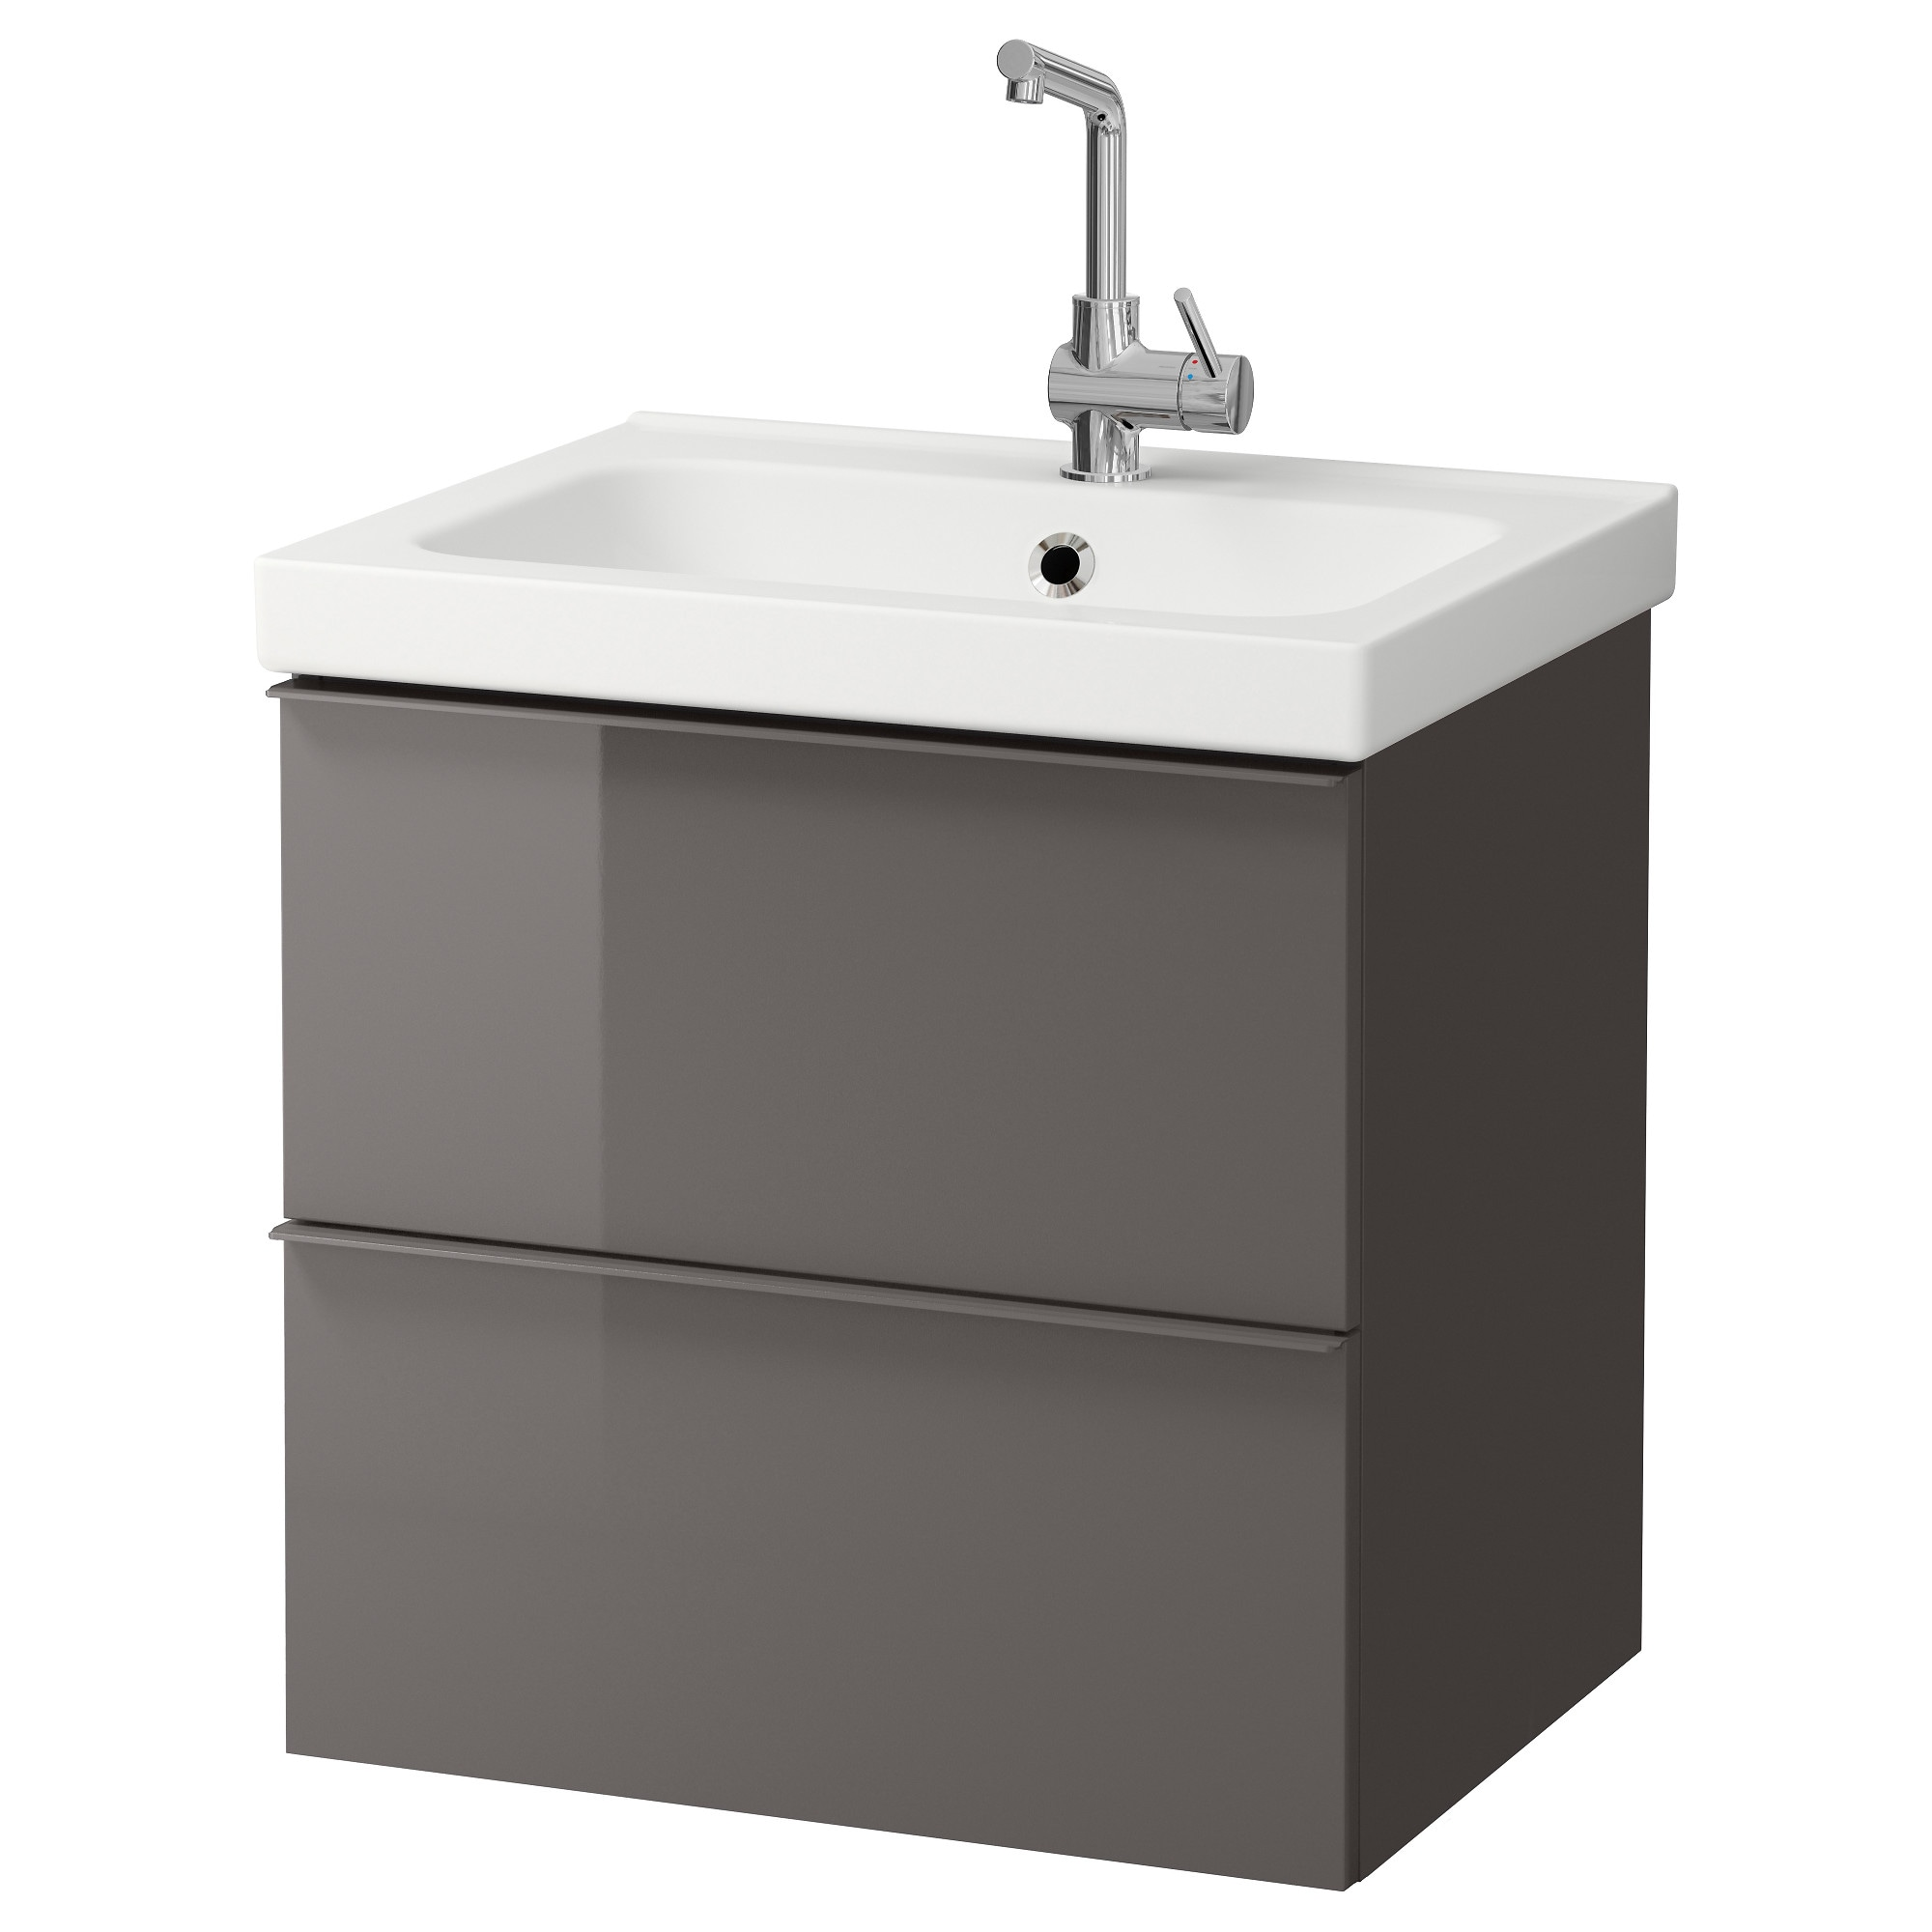 Morgon Odensvik Sink Cabinet With 2 Drawers High Gloss White 23 5 8x19 1 4x25 4 Ikea